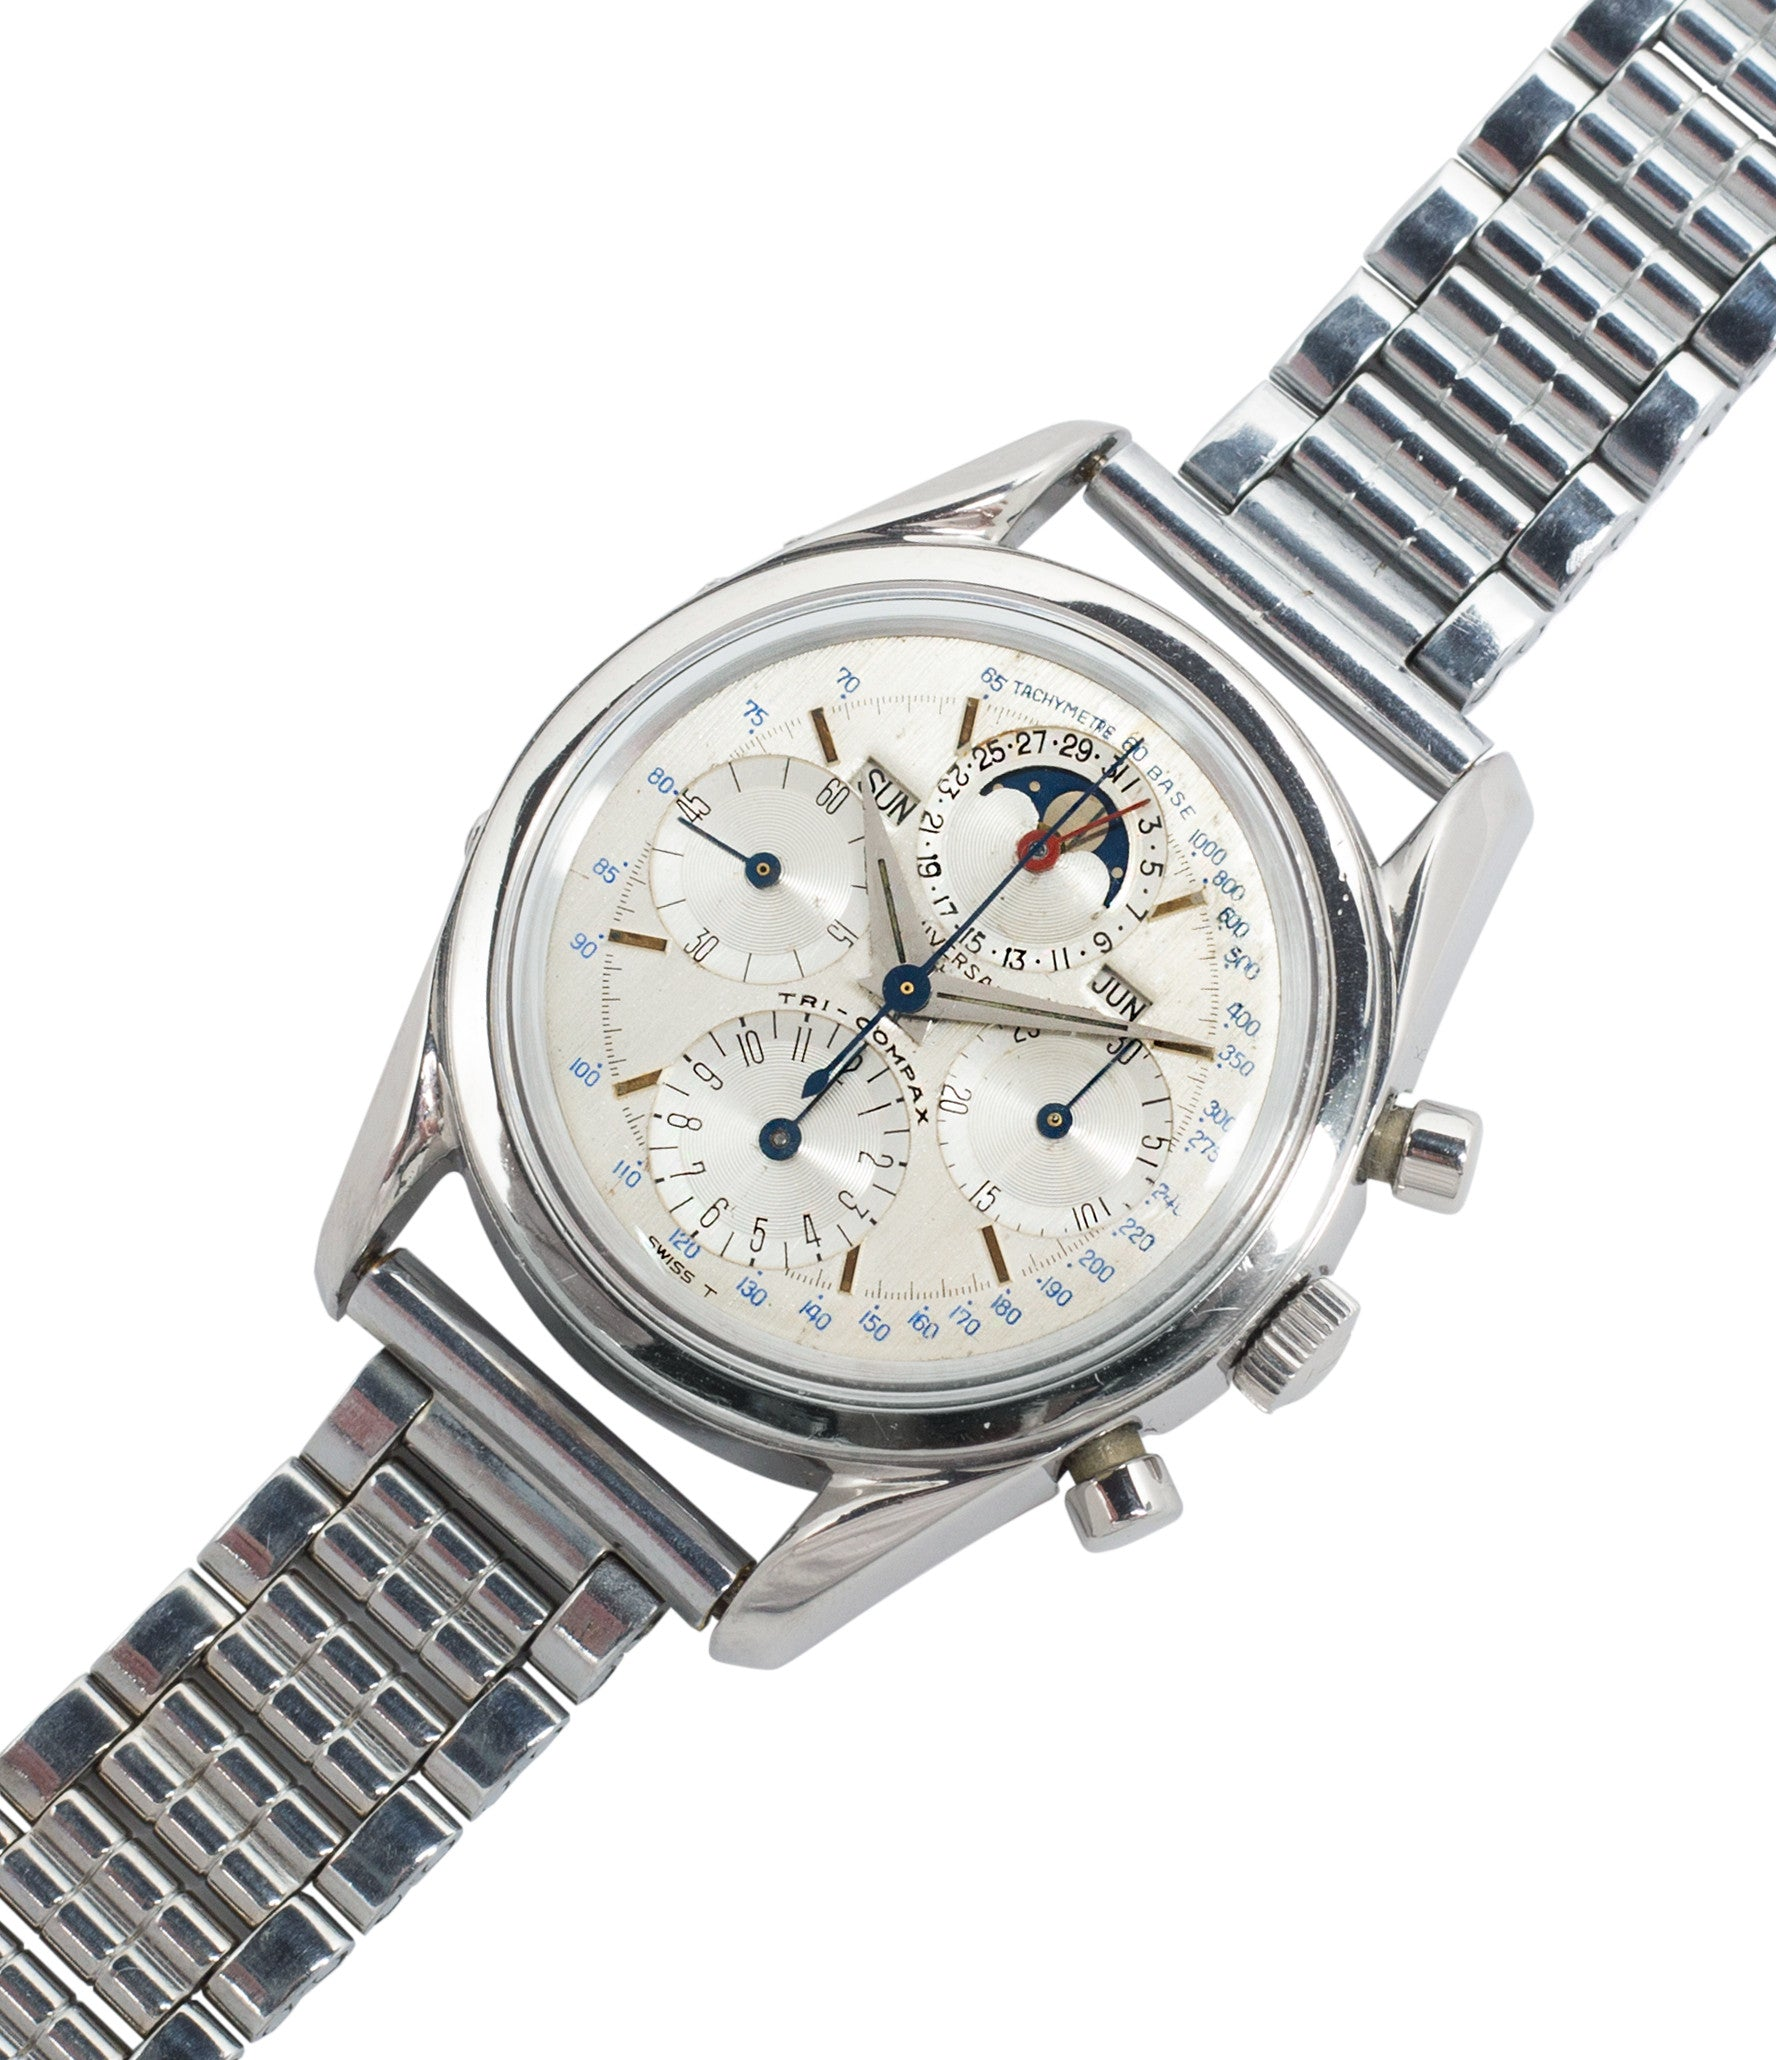 buy vintage steel chronograph Universal Geneve 222100/2 Tri-Compax Triple Calendar Moonphase steel chronograph watch for sale online at A Collected Man London rare vintage watch specialist